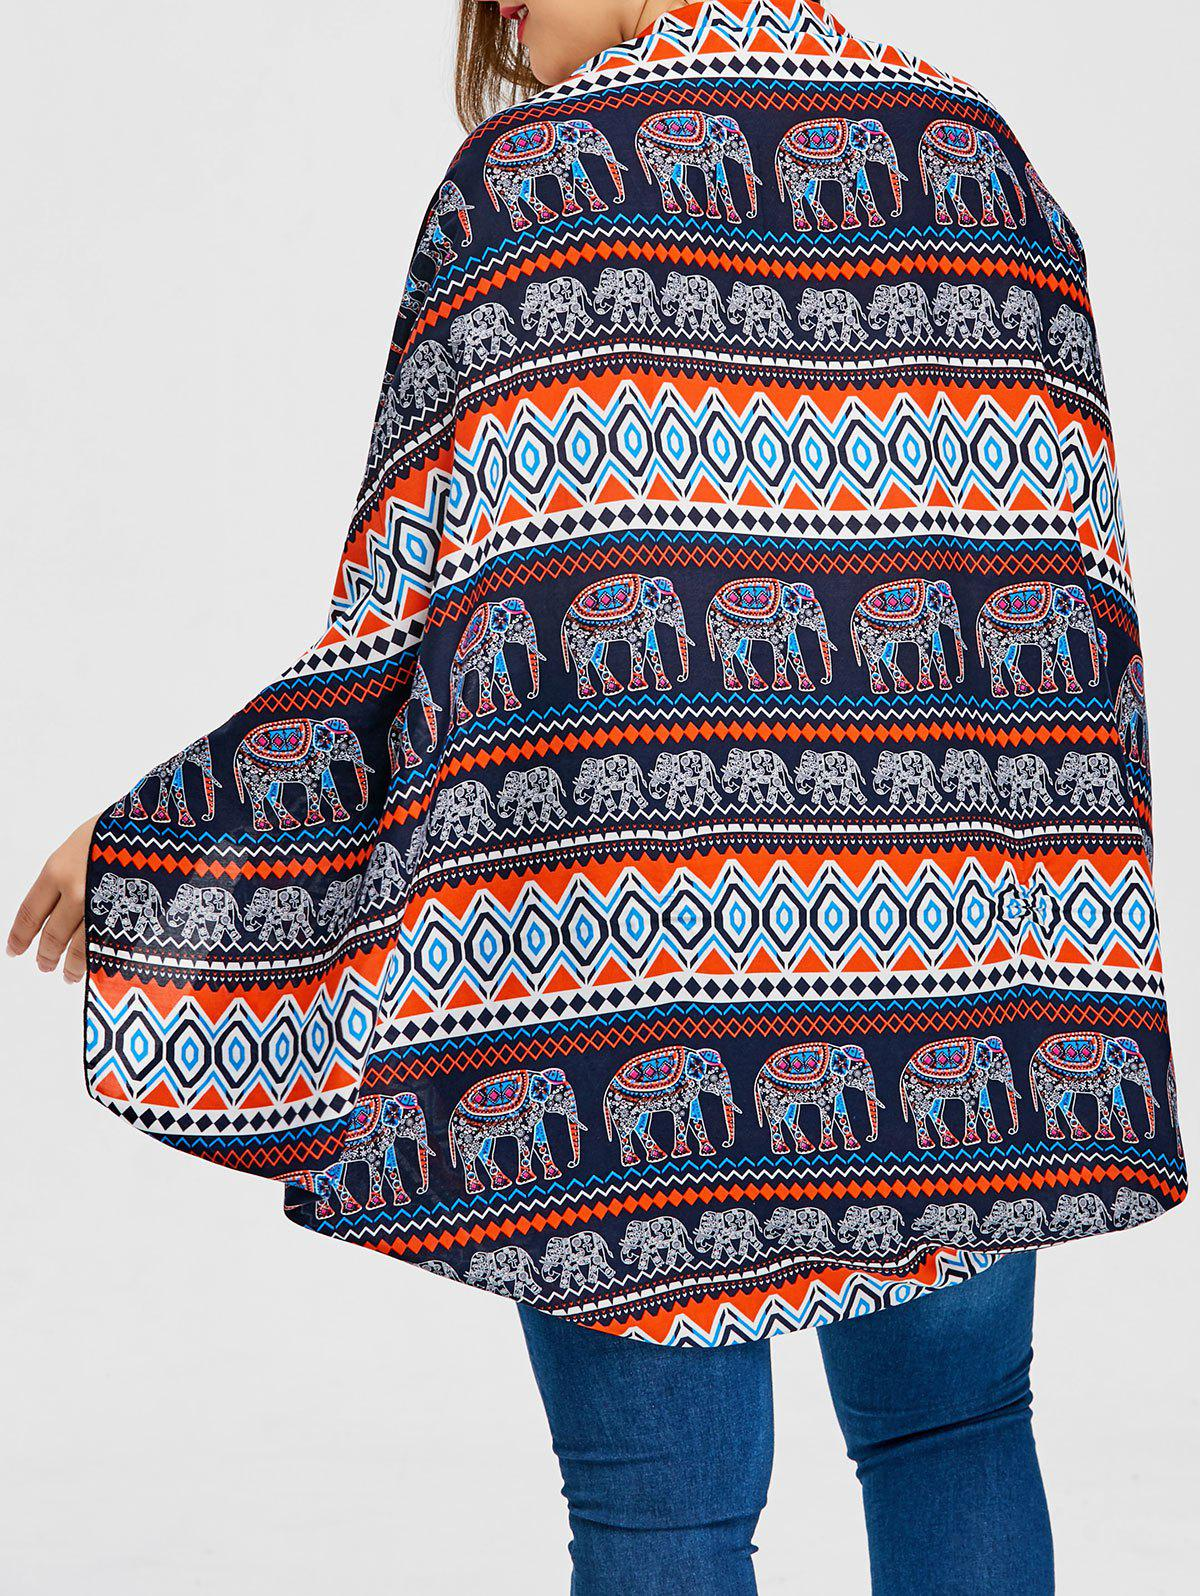 Elephant Printed Plus Size Blouse - BLUE ONE SIZE